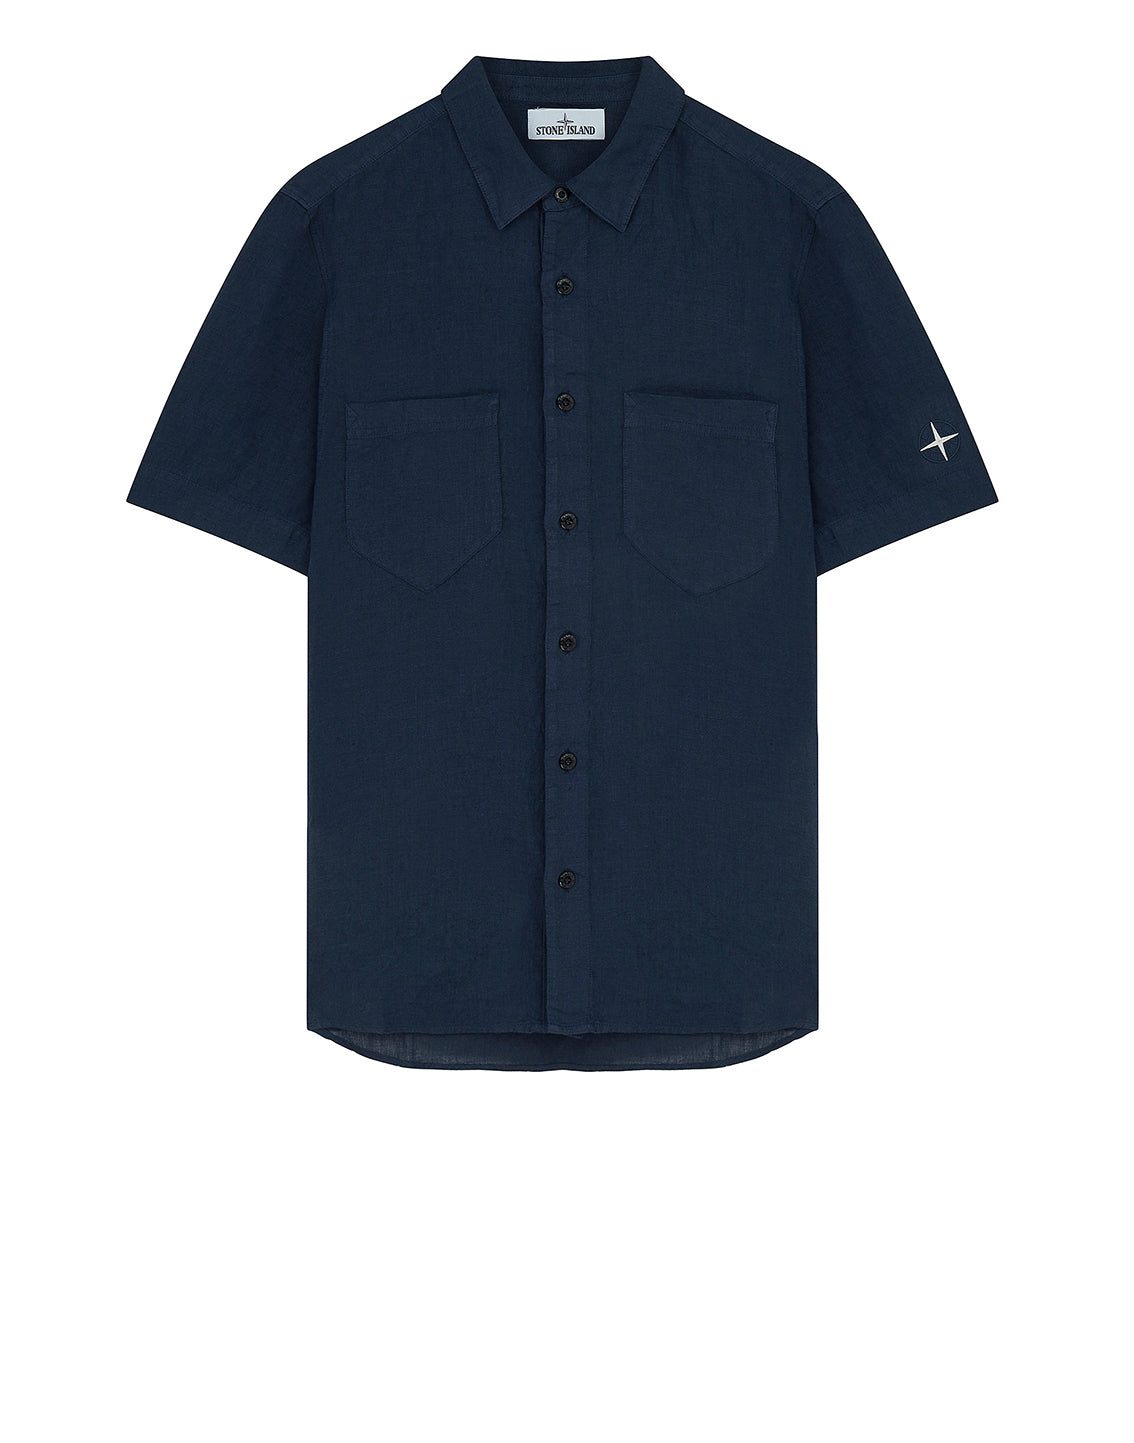 12601 'FISSATO' DYE TREATMENT Shirt in Blue Marine